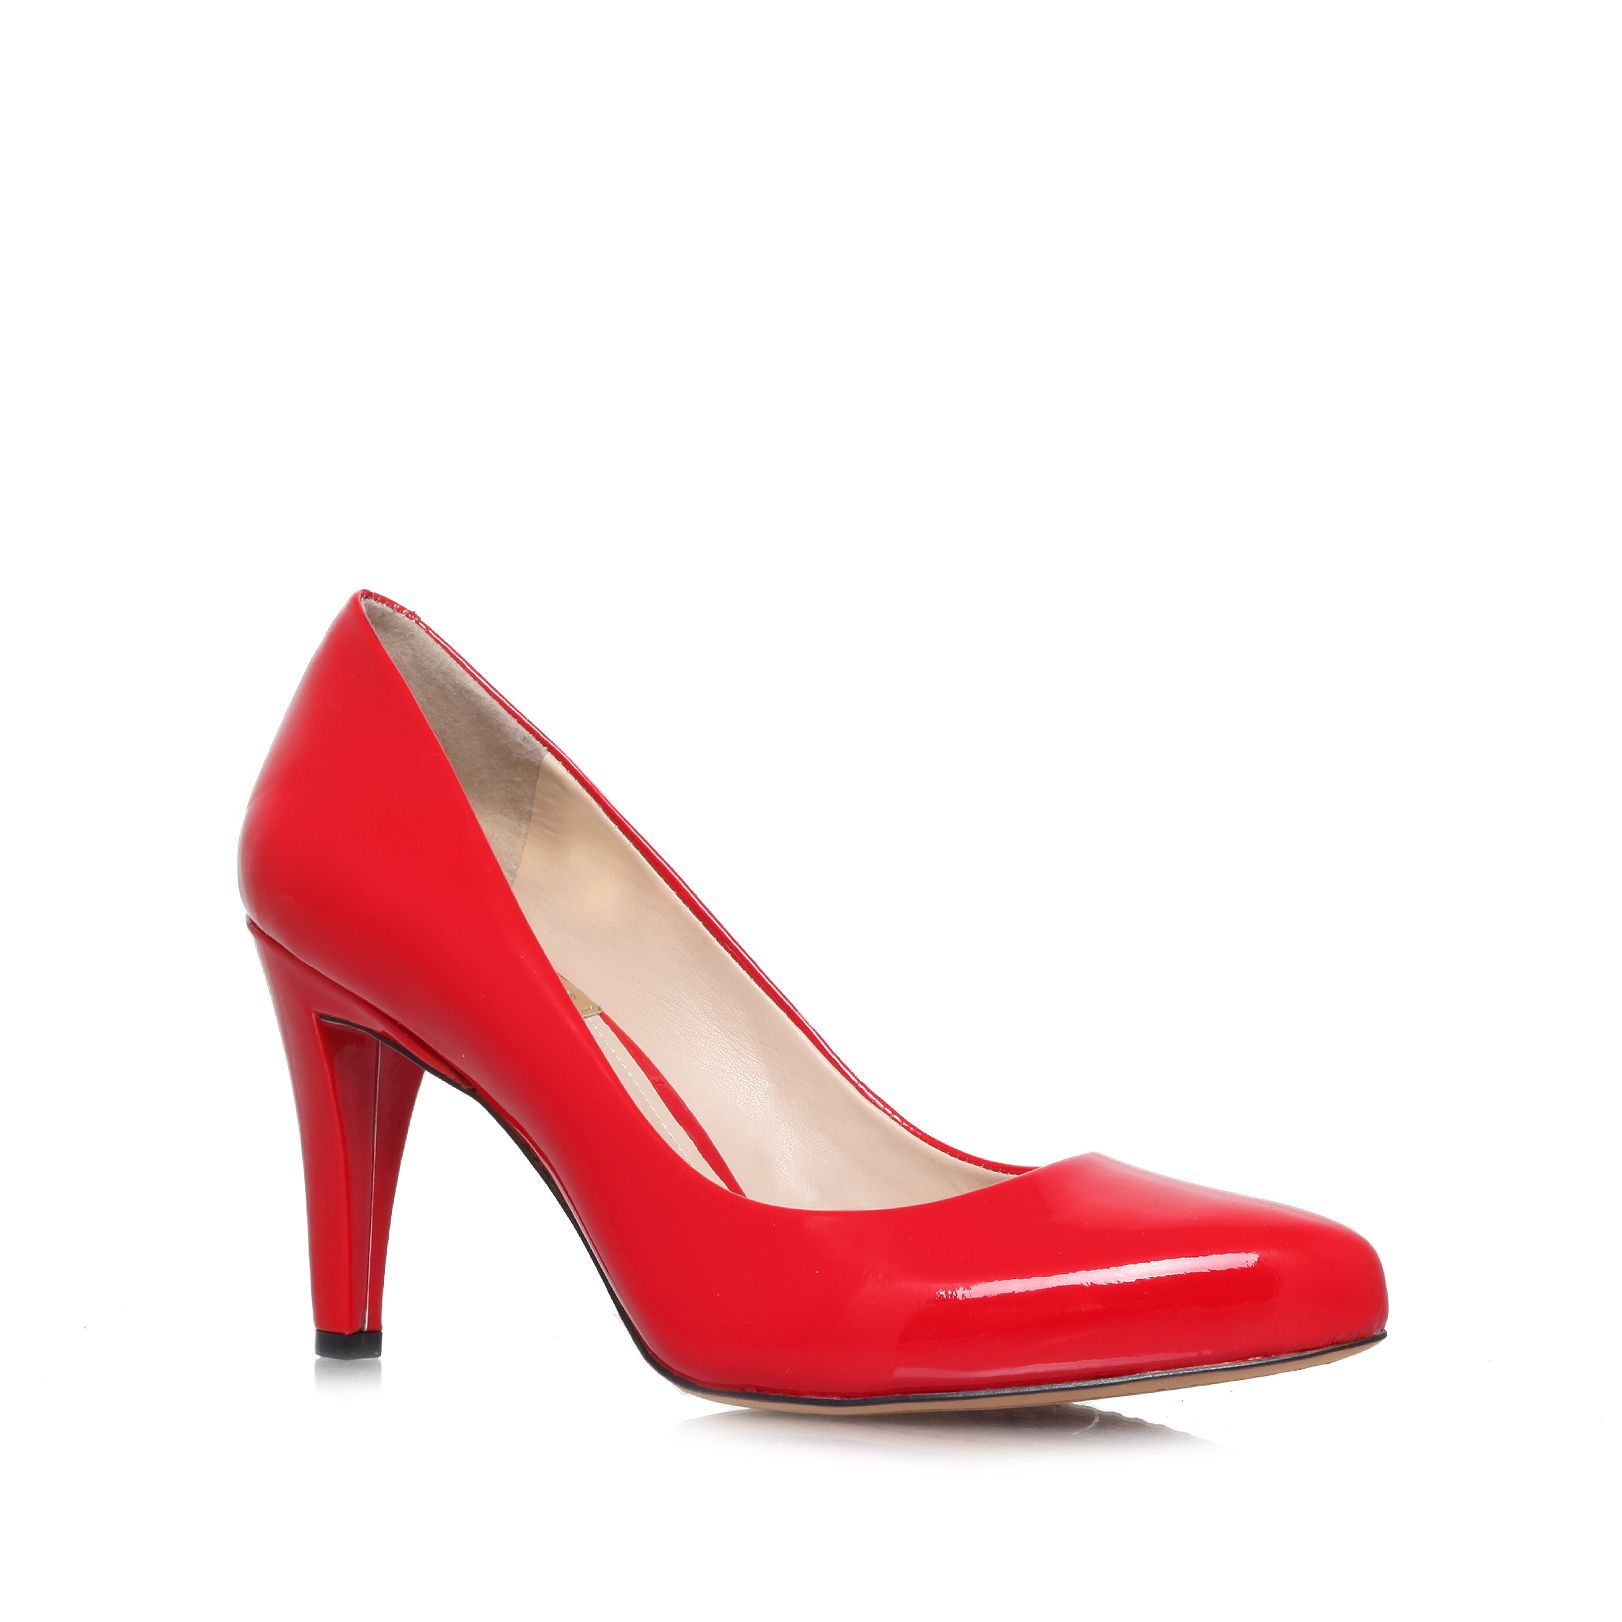 Kadri high heeled court shoes